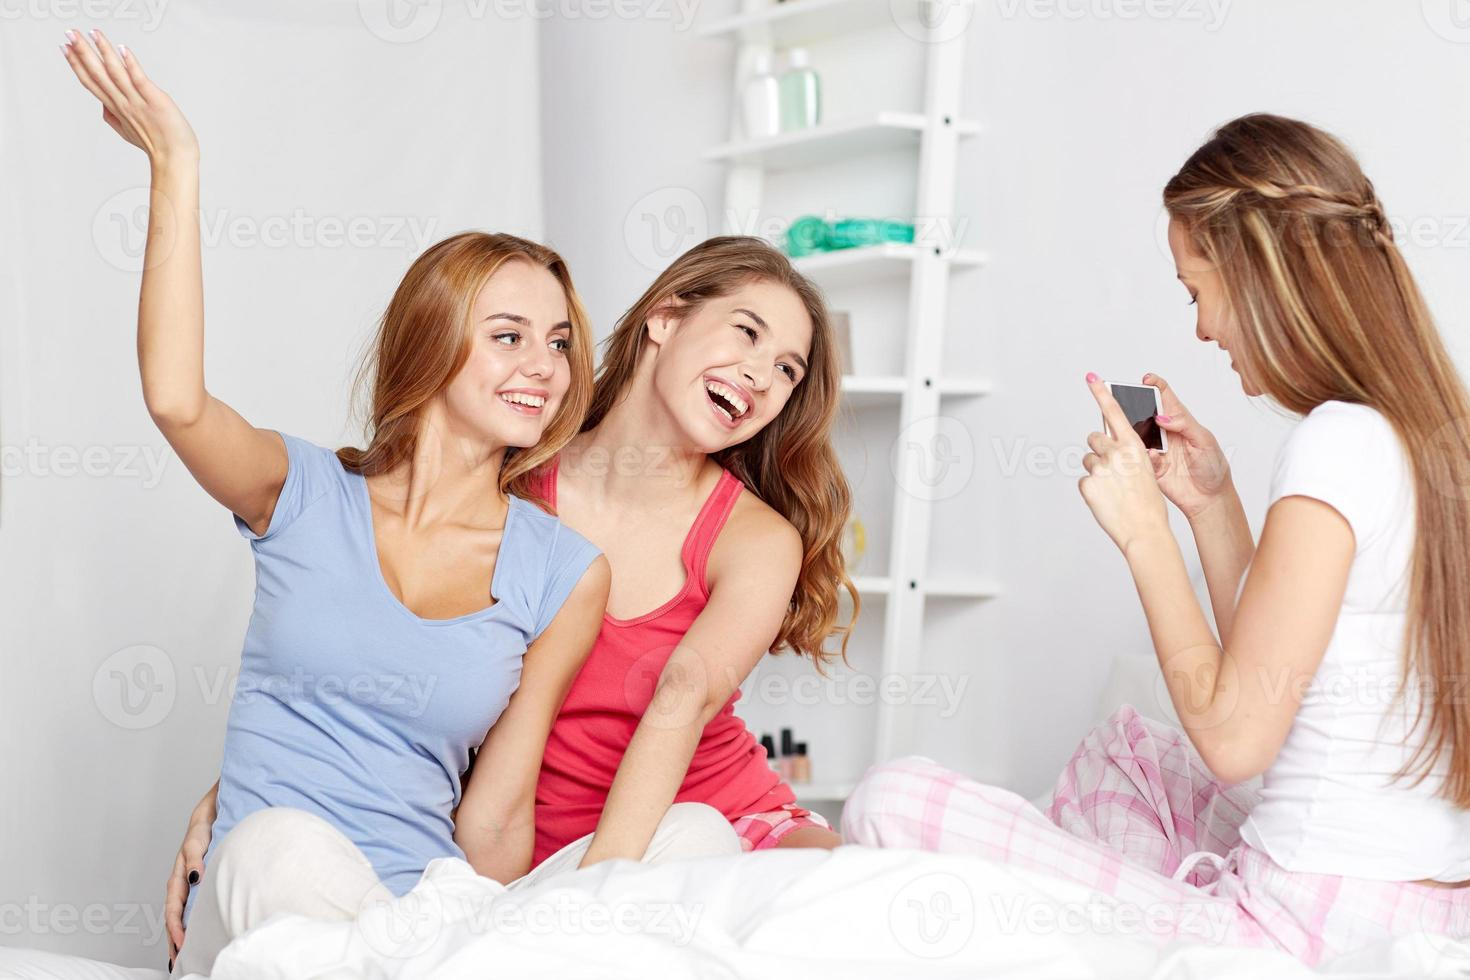 teen girls with smartphone taking picture at home photo